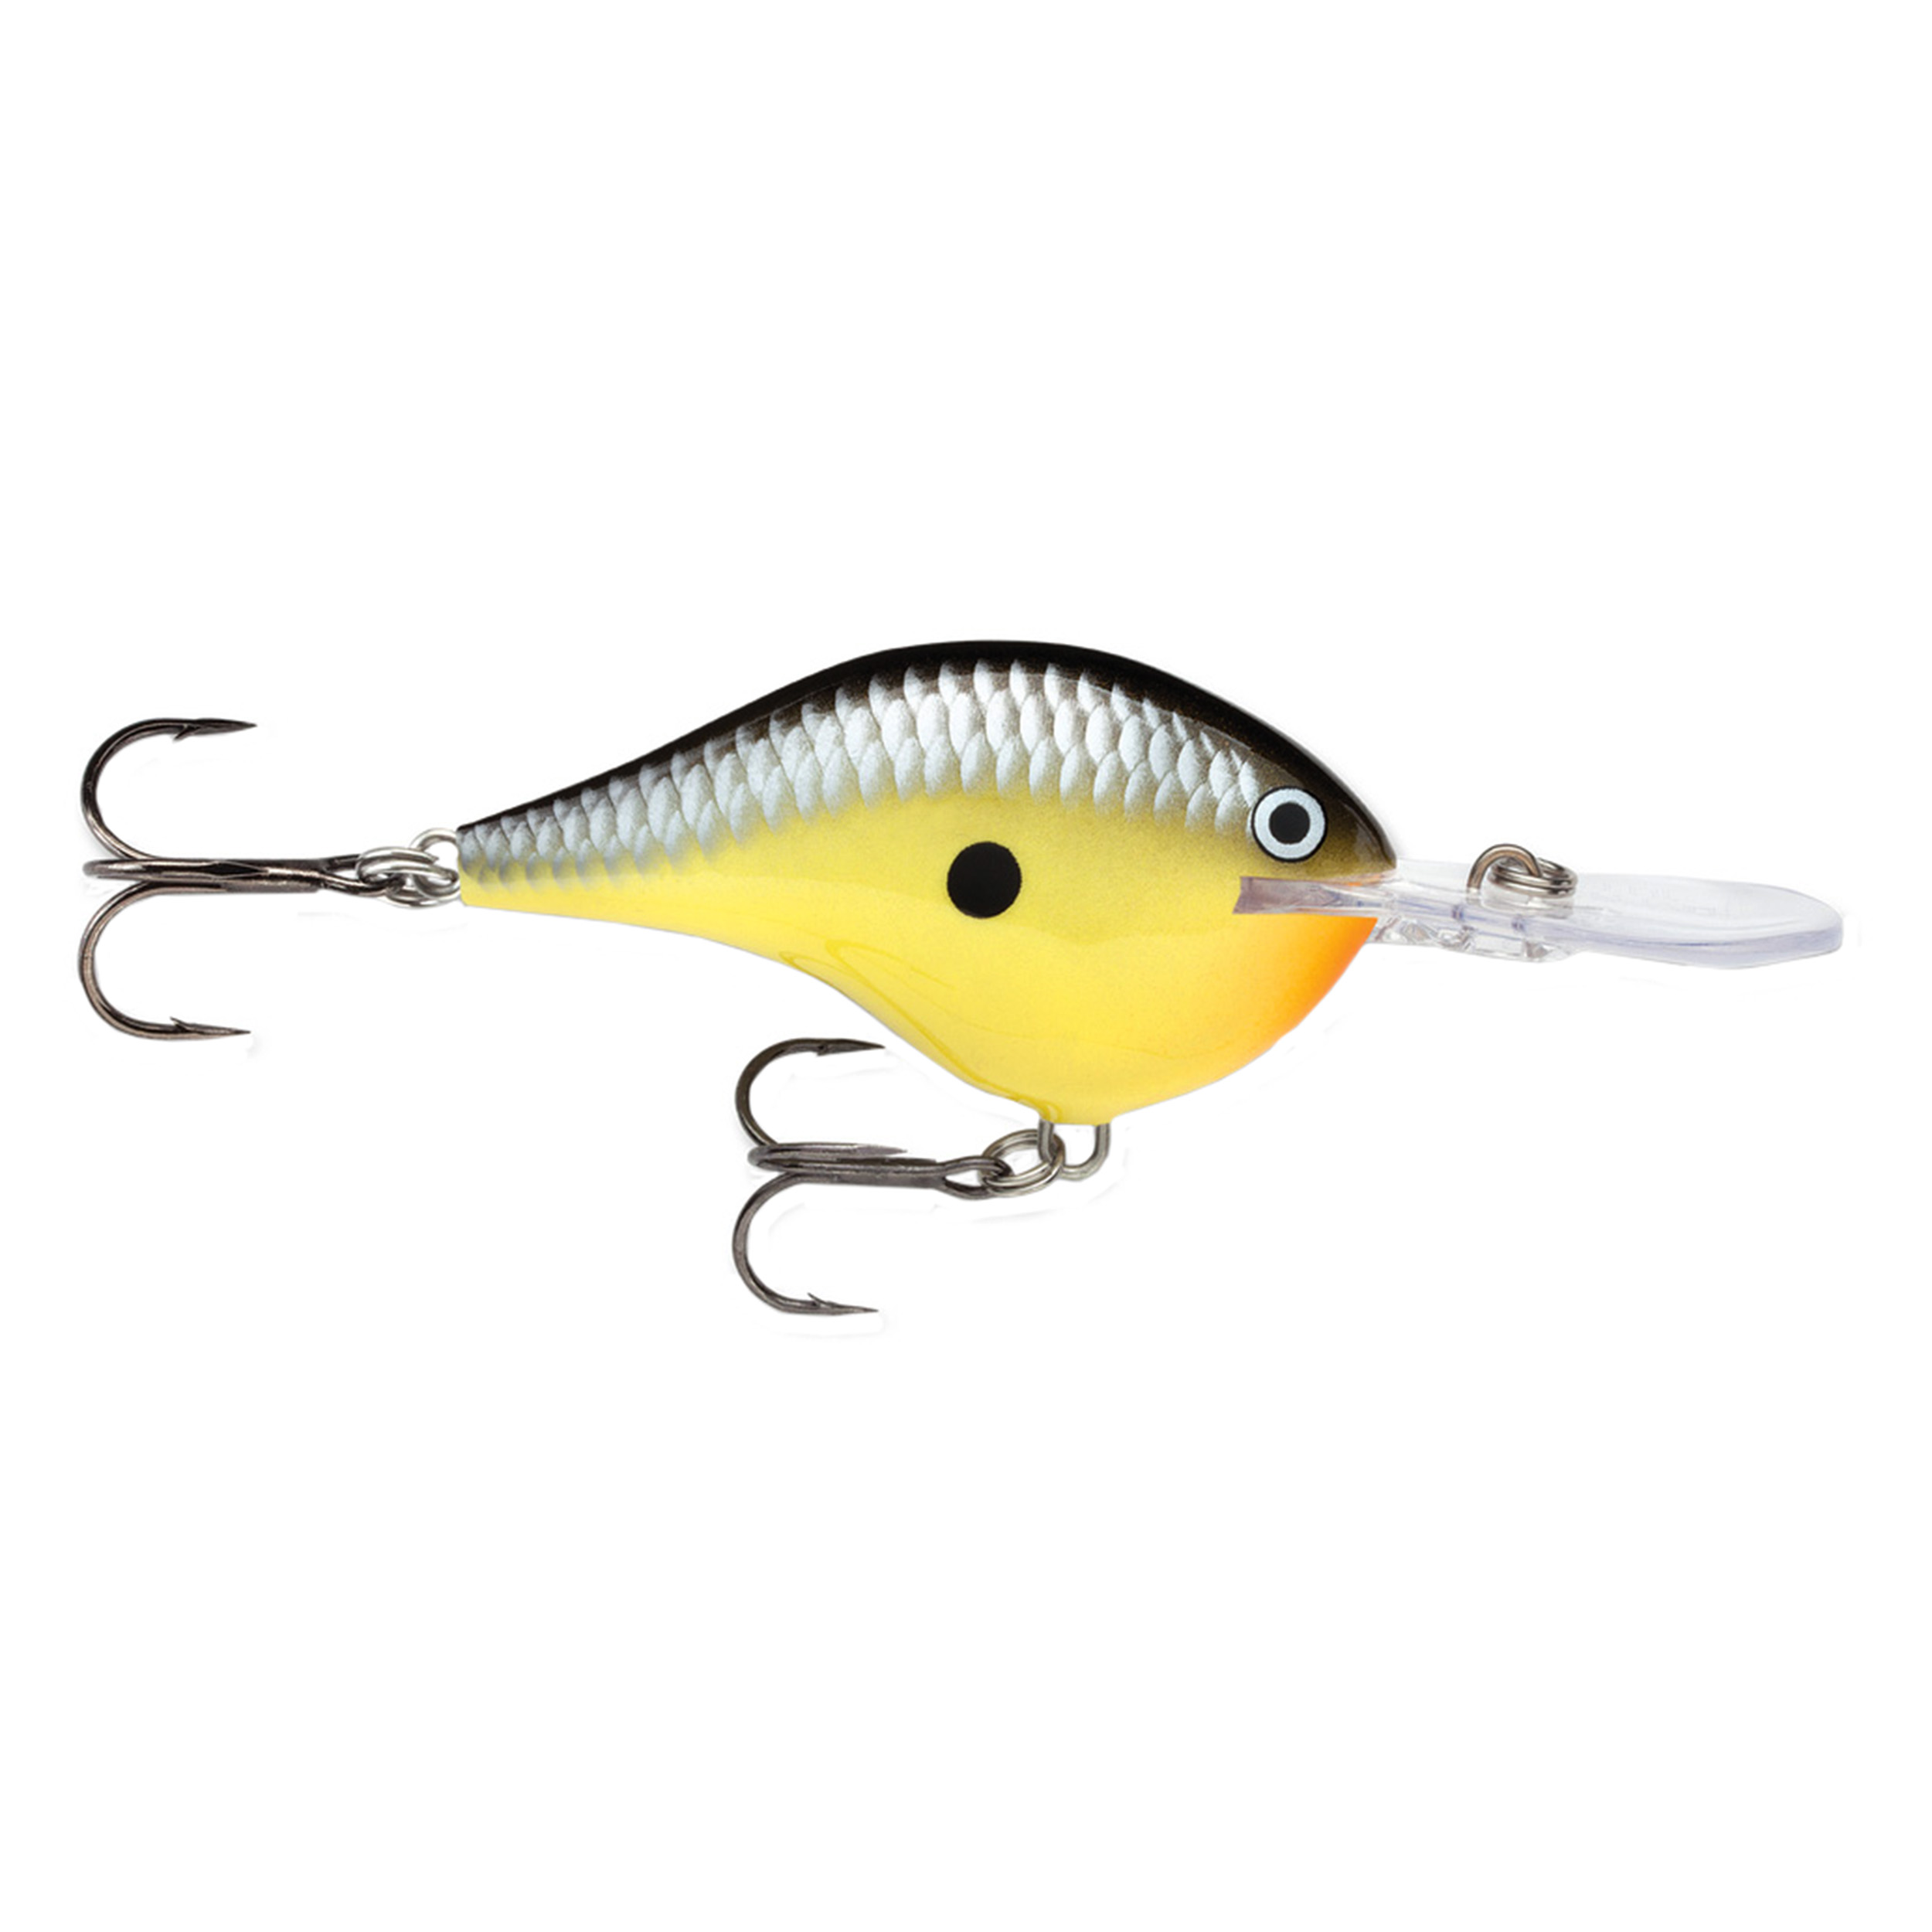 "Click here to buy Rapala Dives-To Series Custom Ink Lure Size 06, 2"" Length, 6' Depth, 2 Number 5 Treble Hooks, Old School, Per 1 by Rapala."